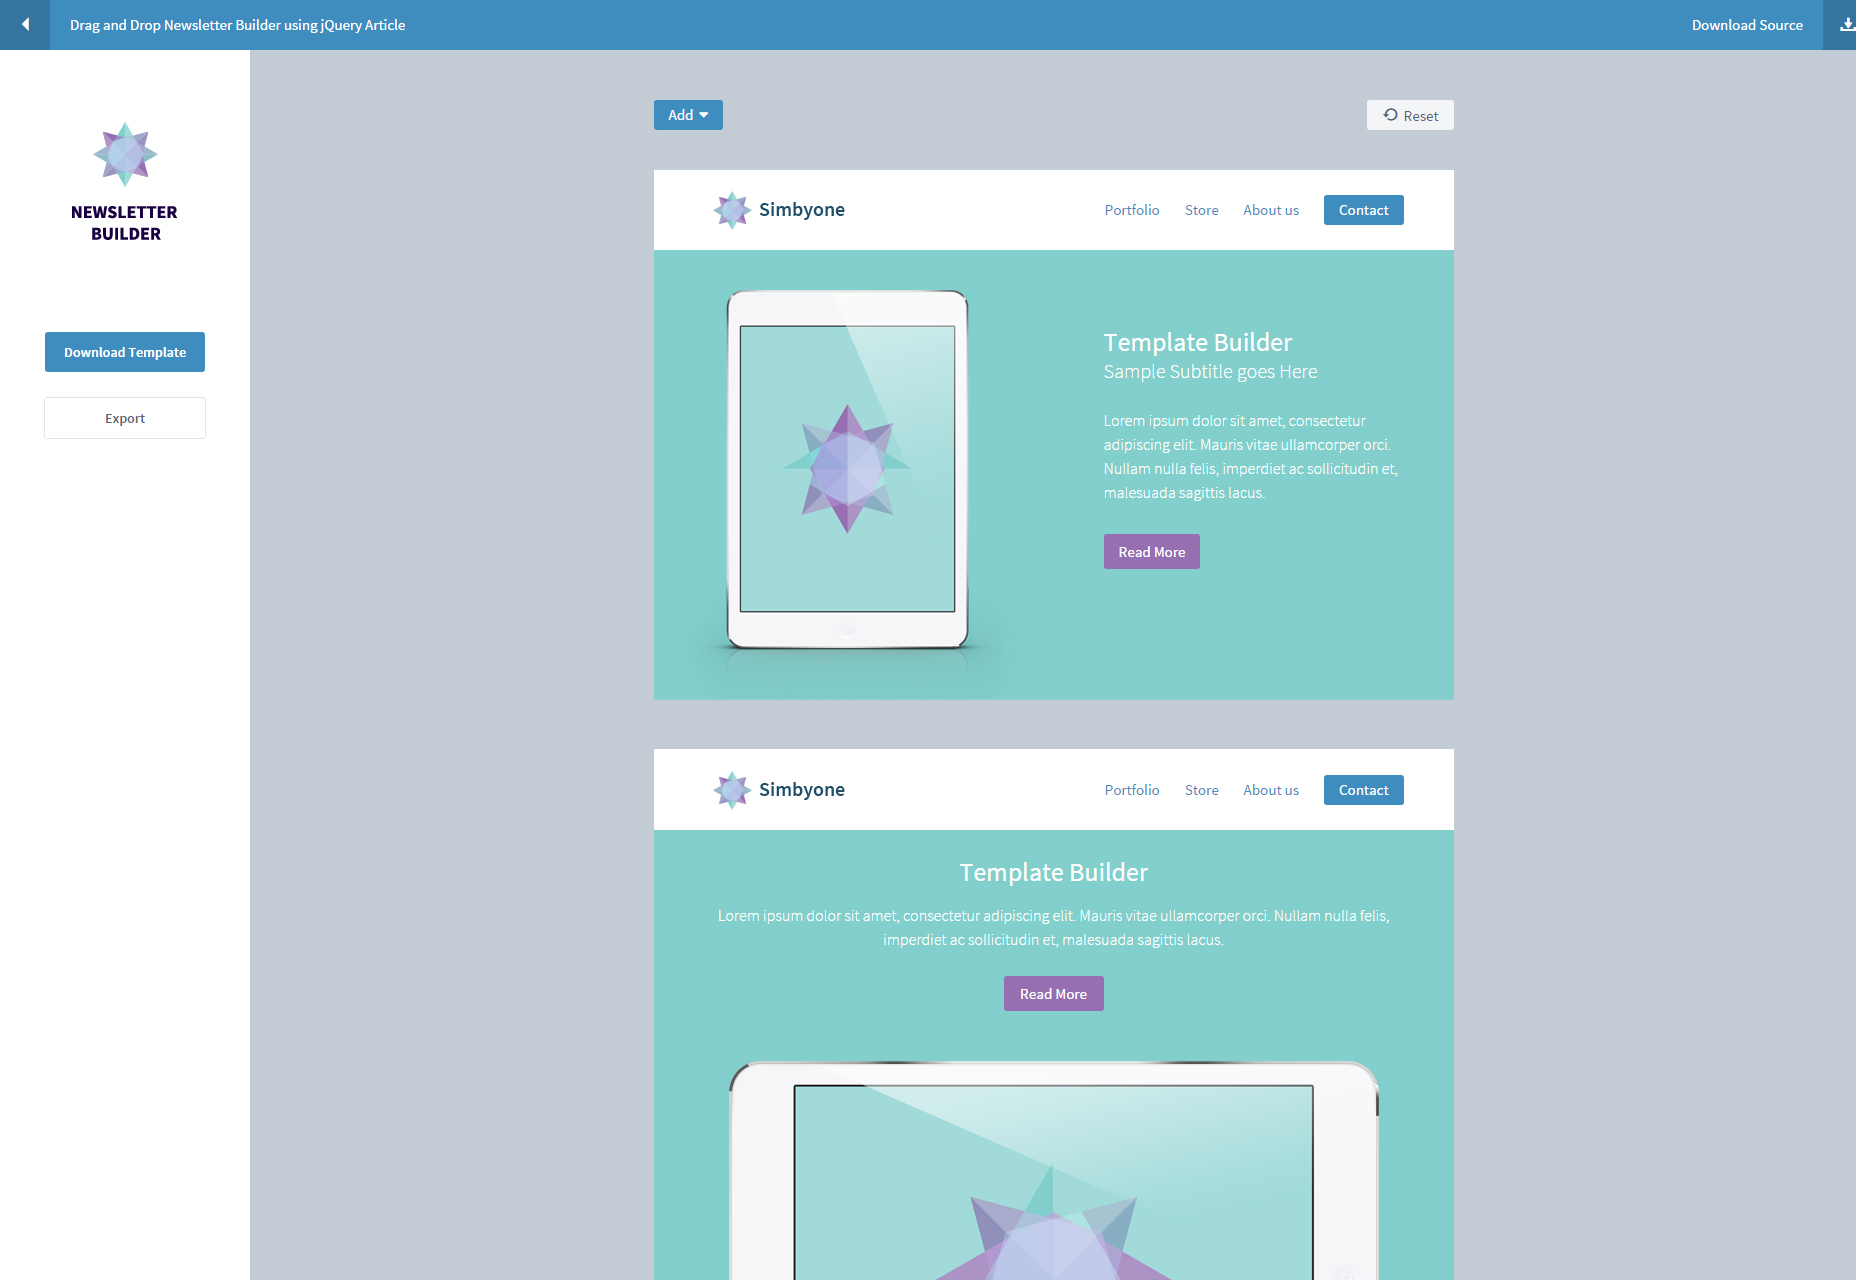 jQuery Drag and Drop Newsletter Builder